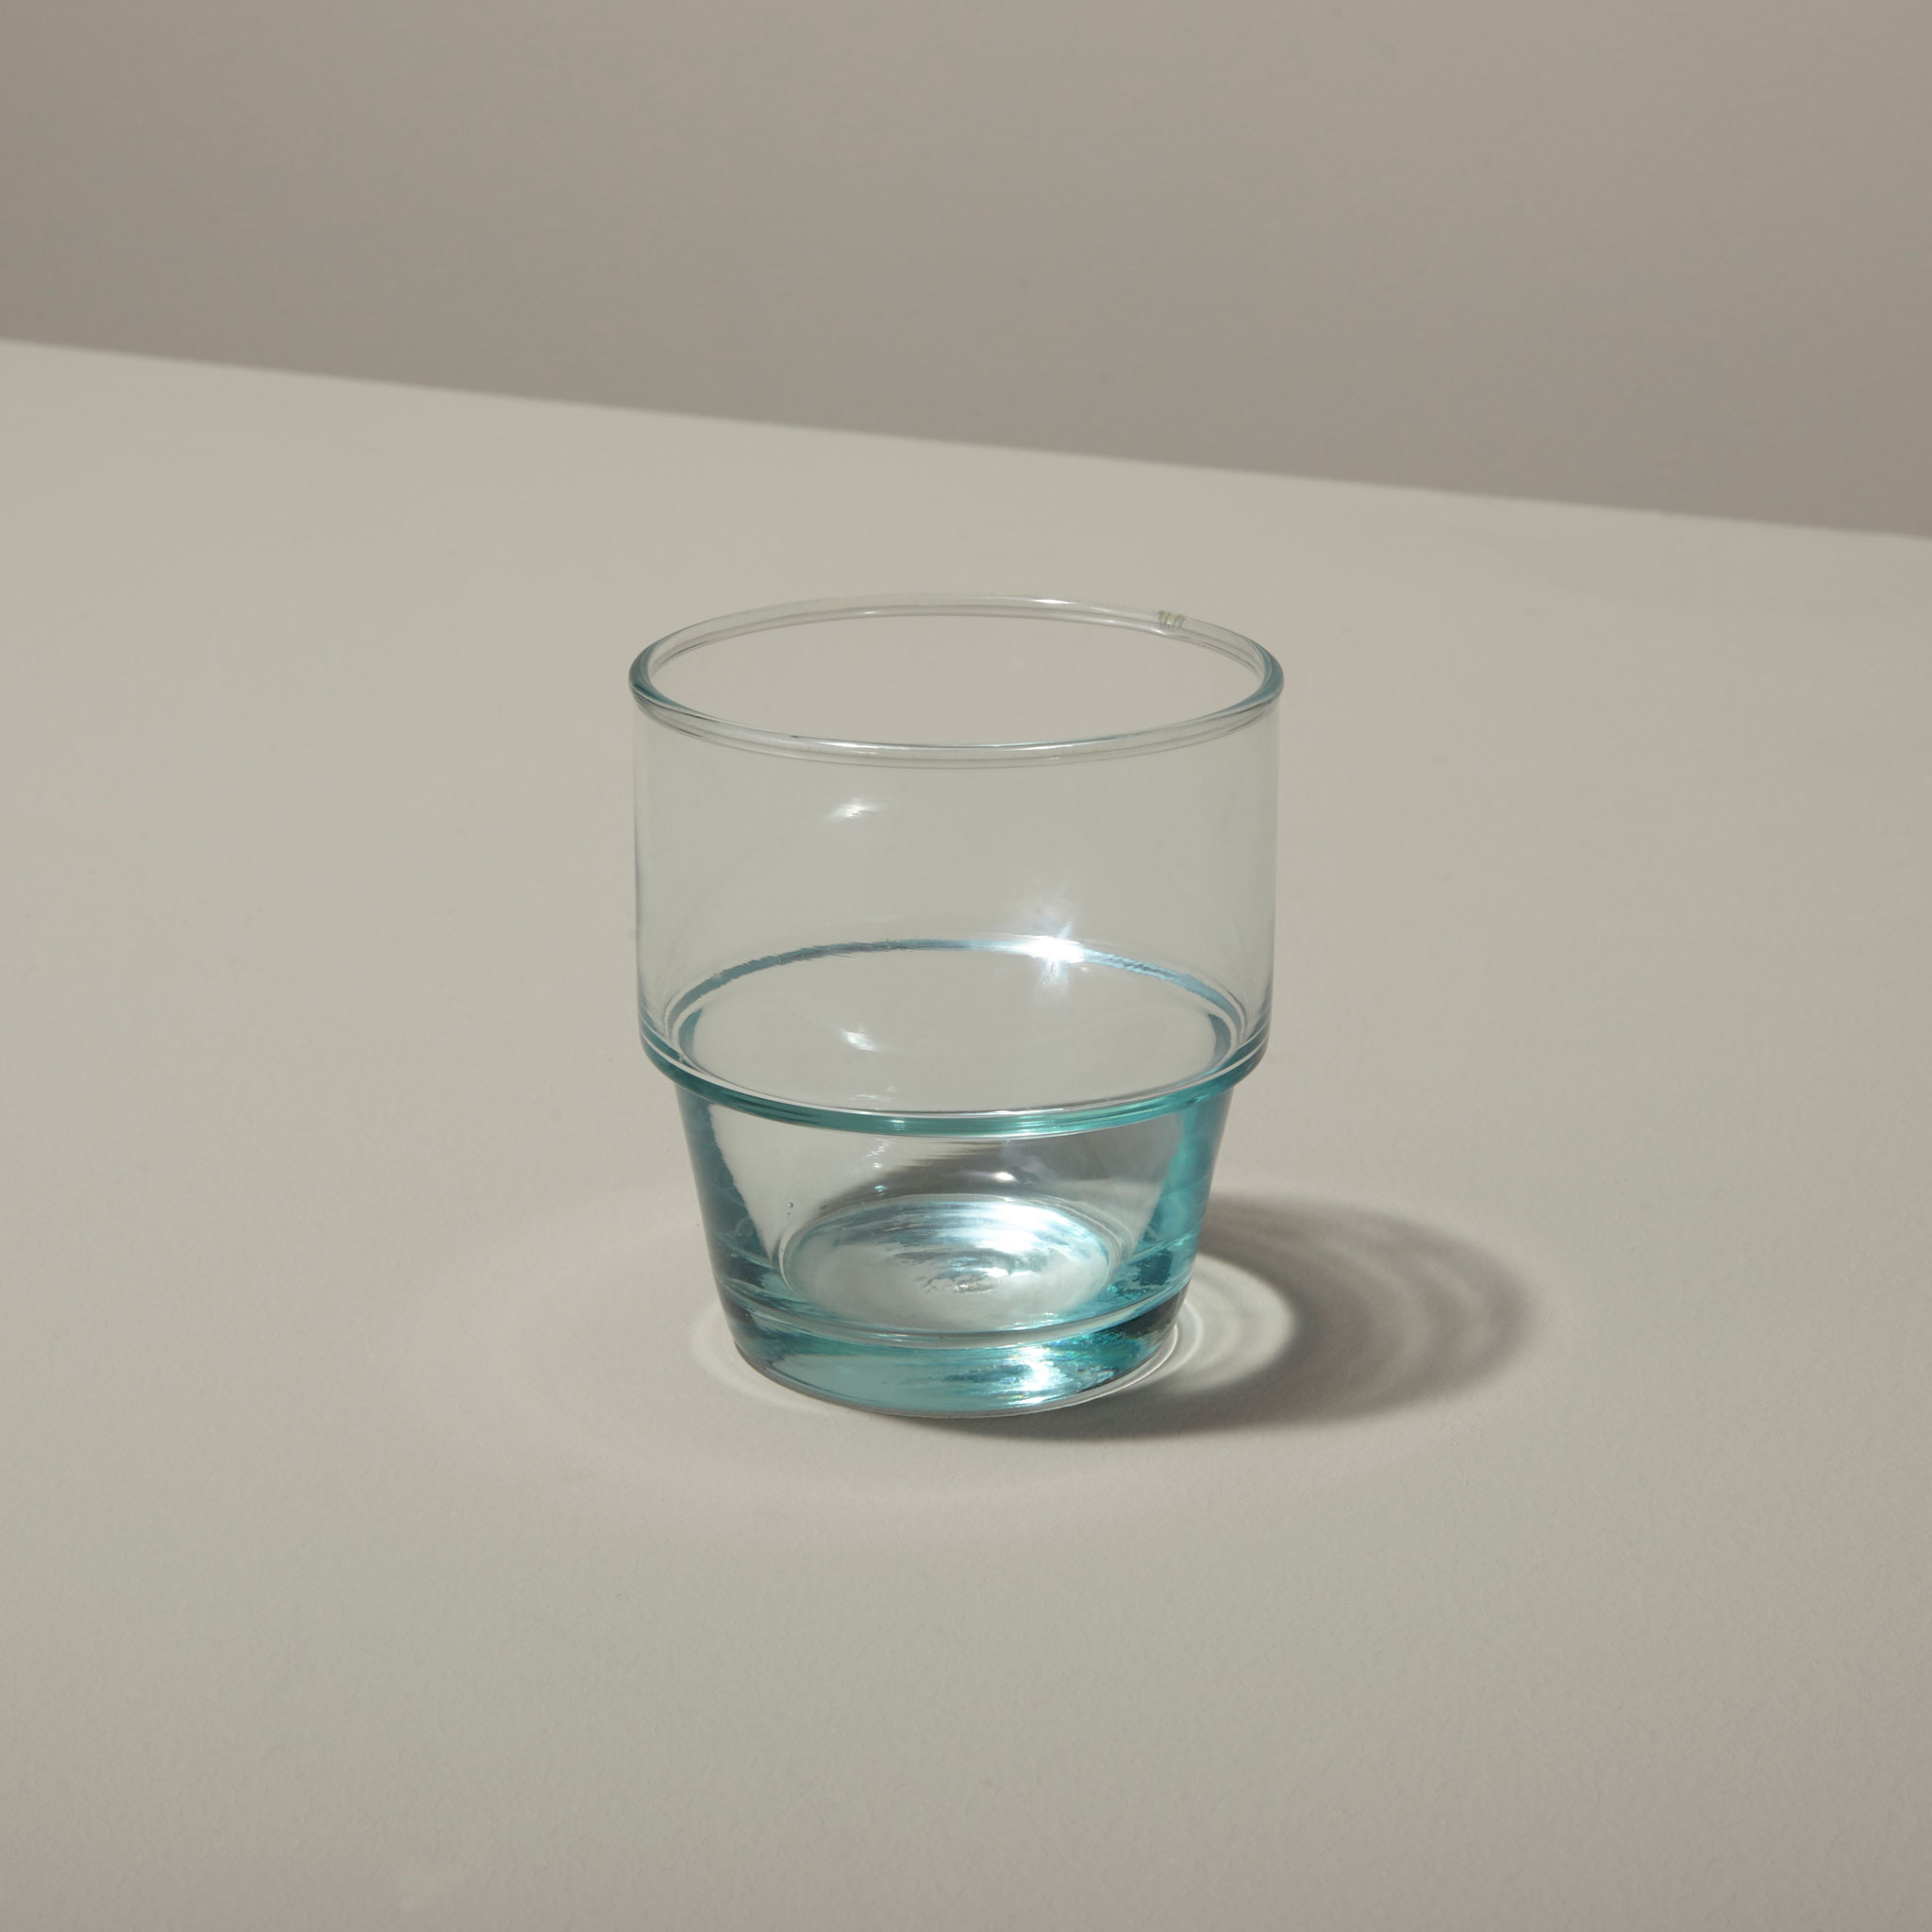 Be-Home_Recycled-Glass-Stacking-Tumbler-Tall_46-17